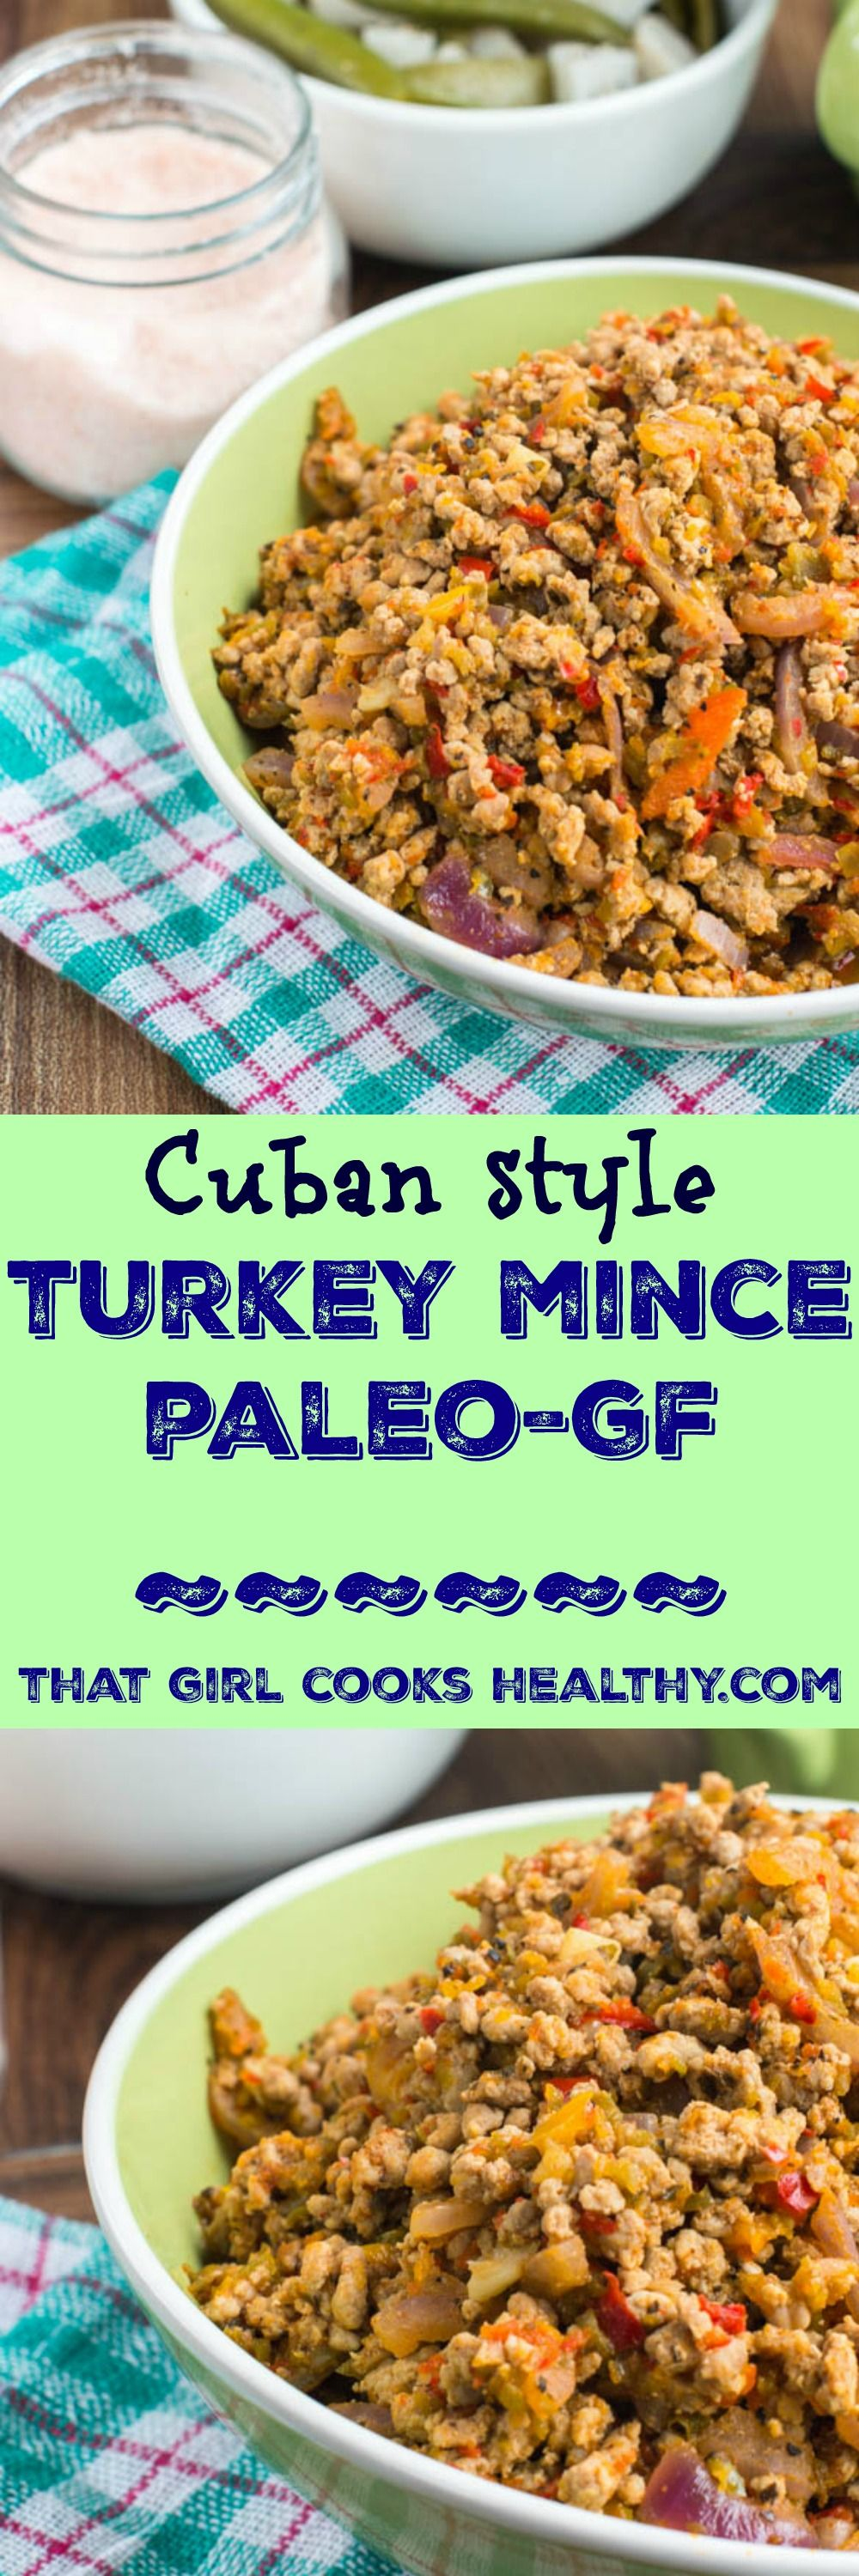 Turkey mince (Cuban style) | Recipe | Food of the World ...